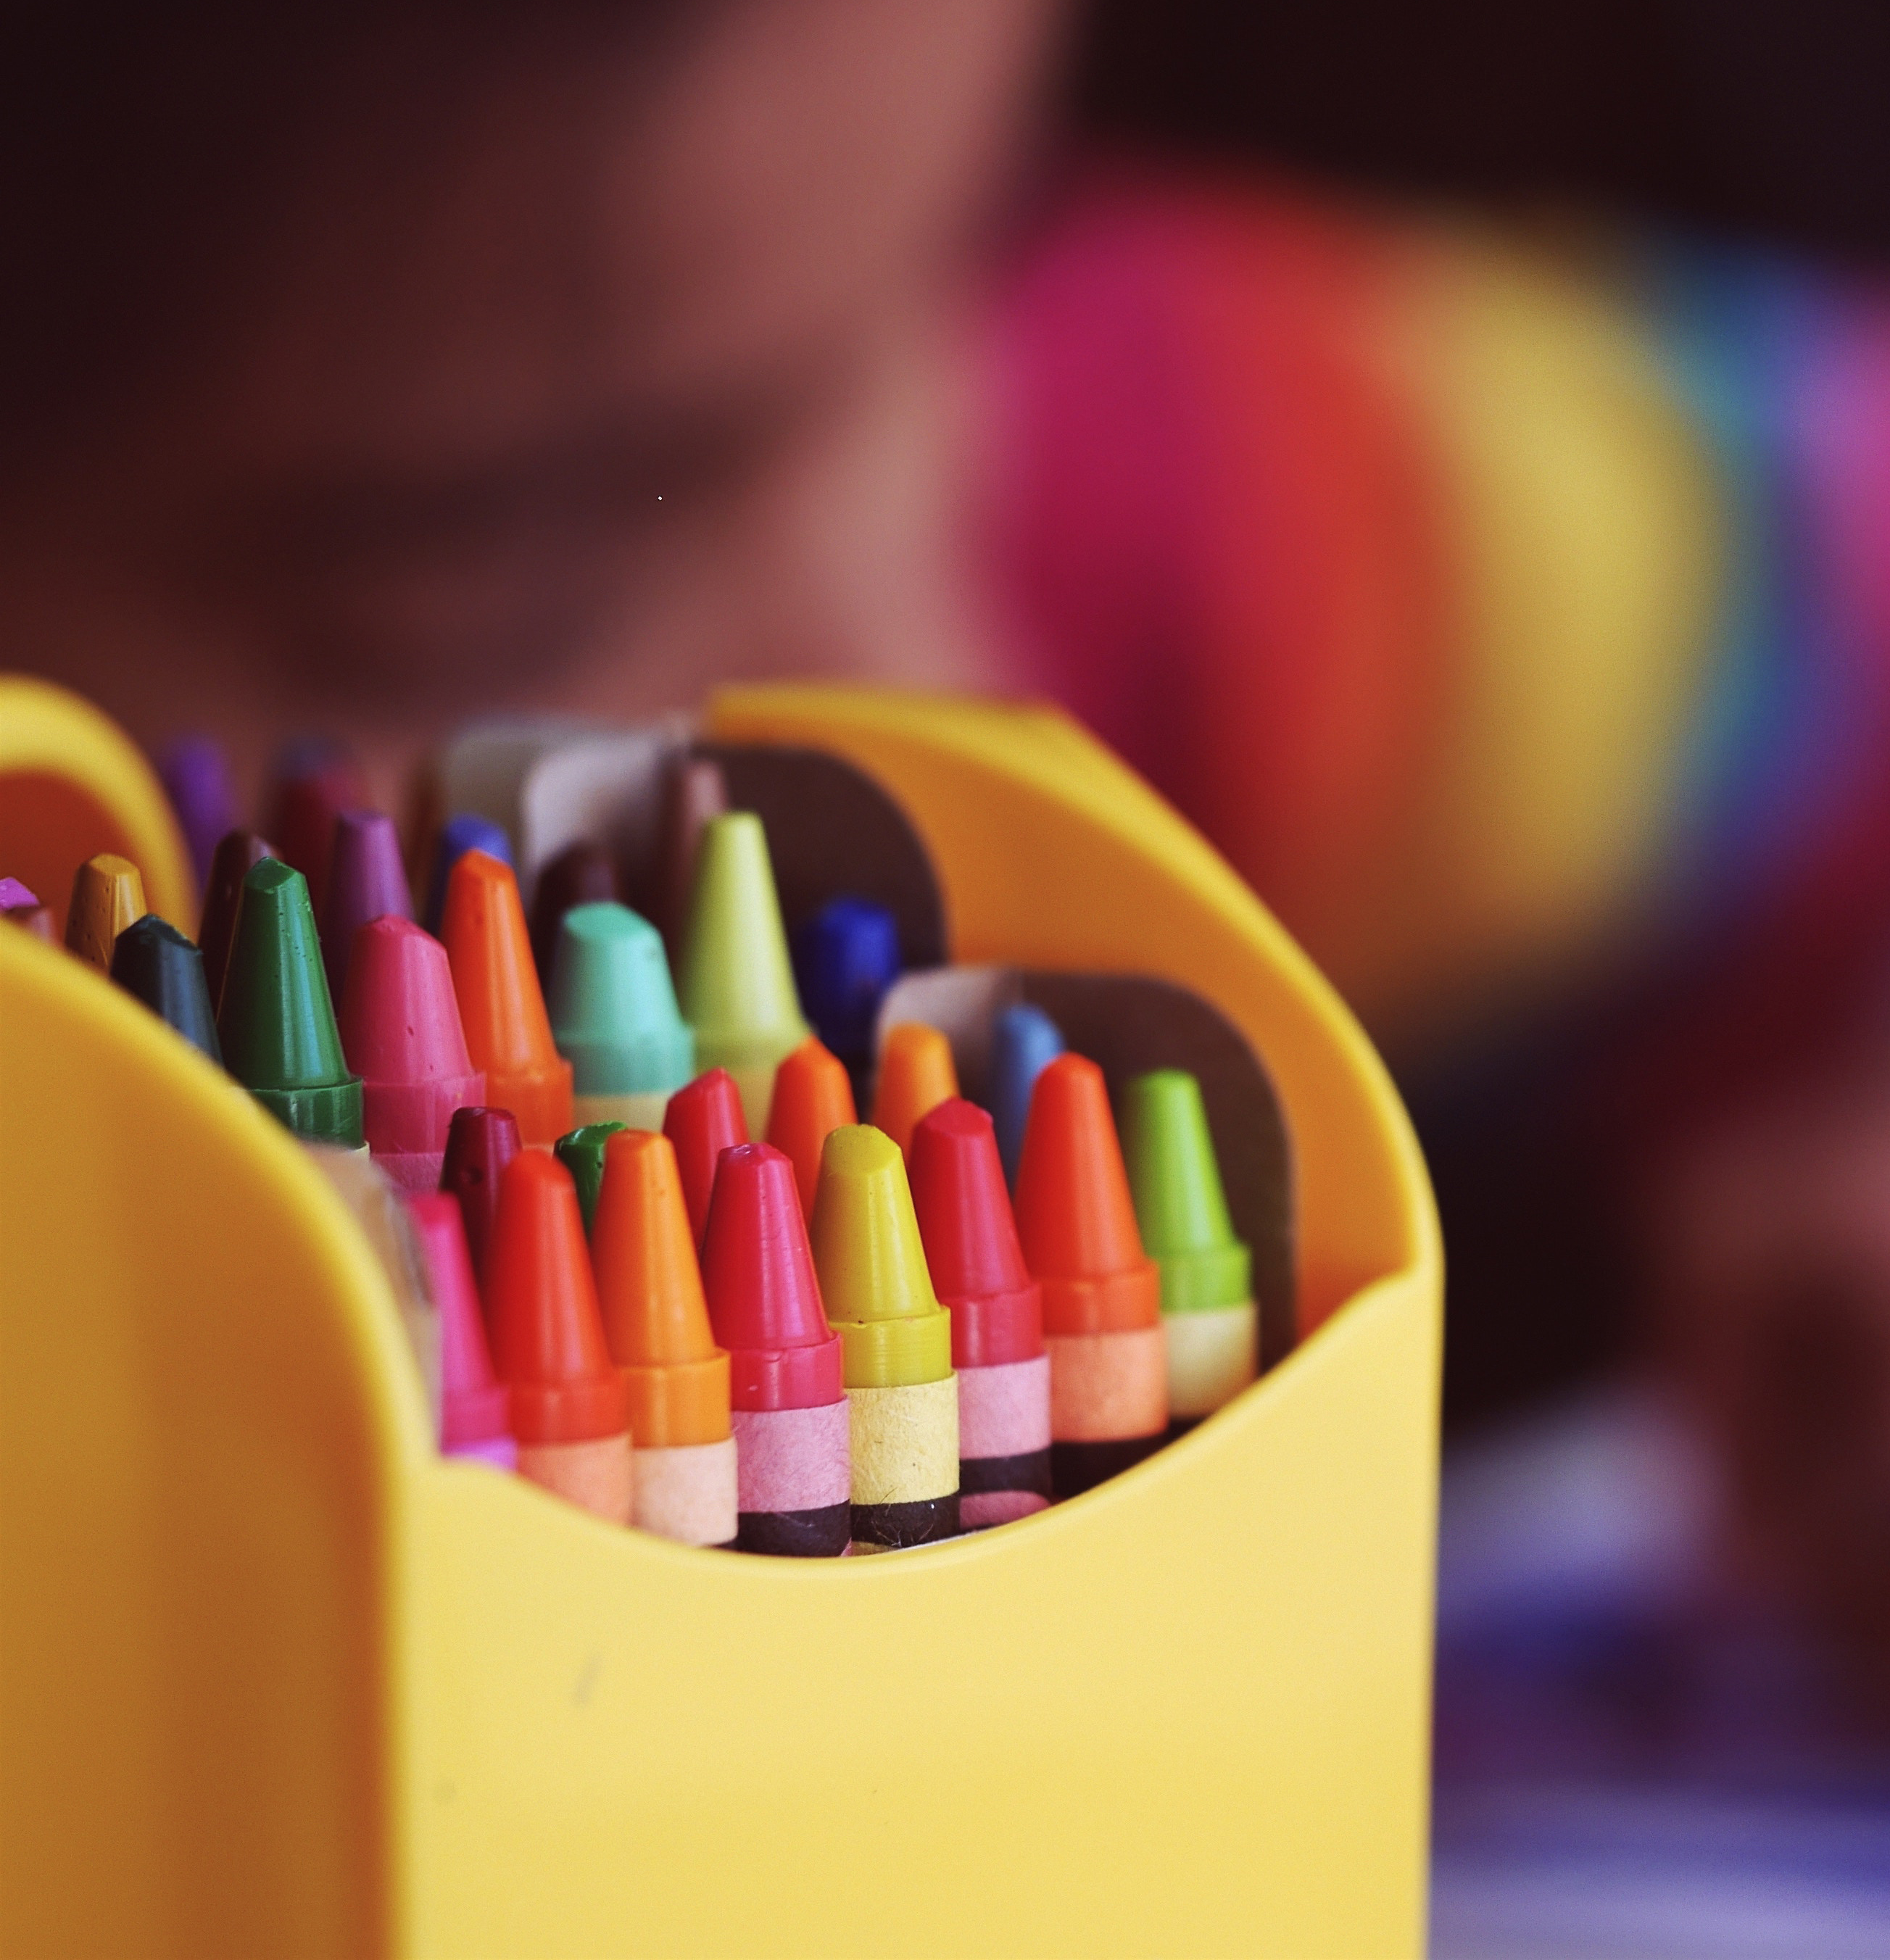 Image of a box of crayons